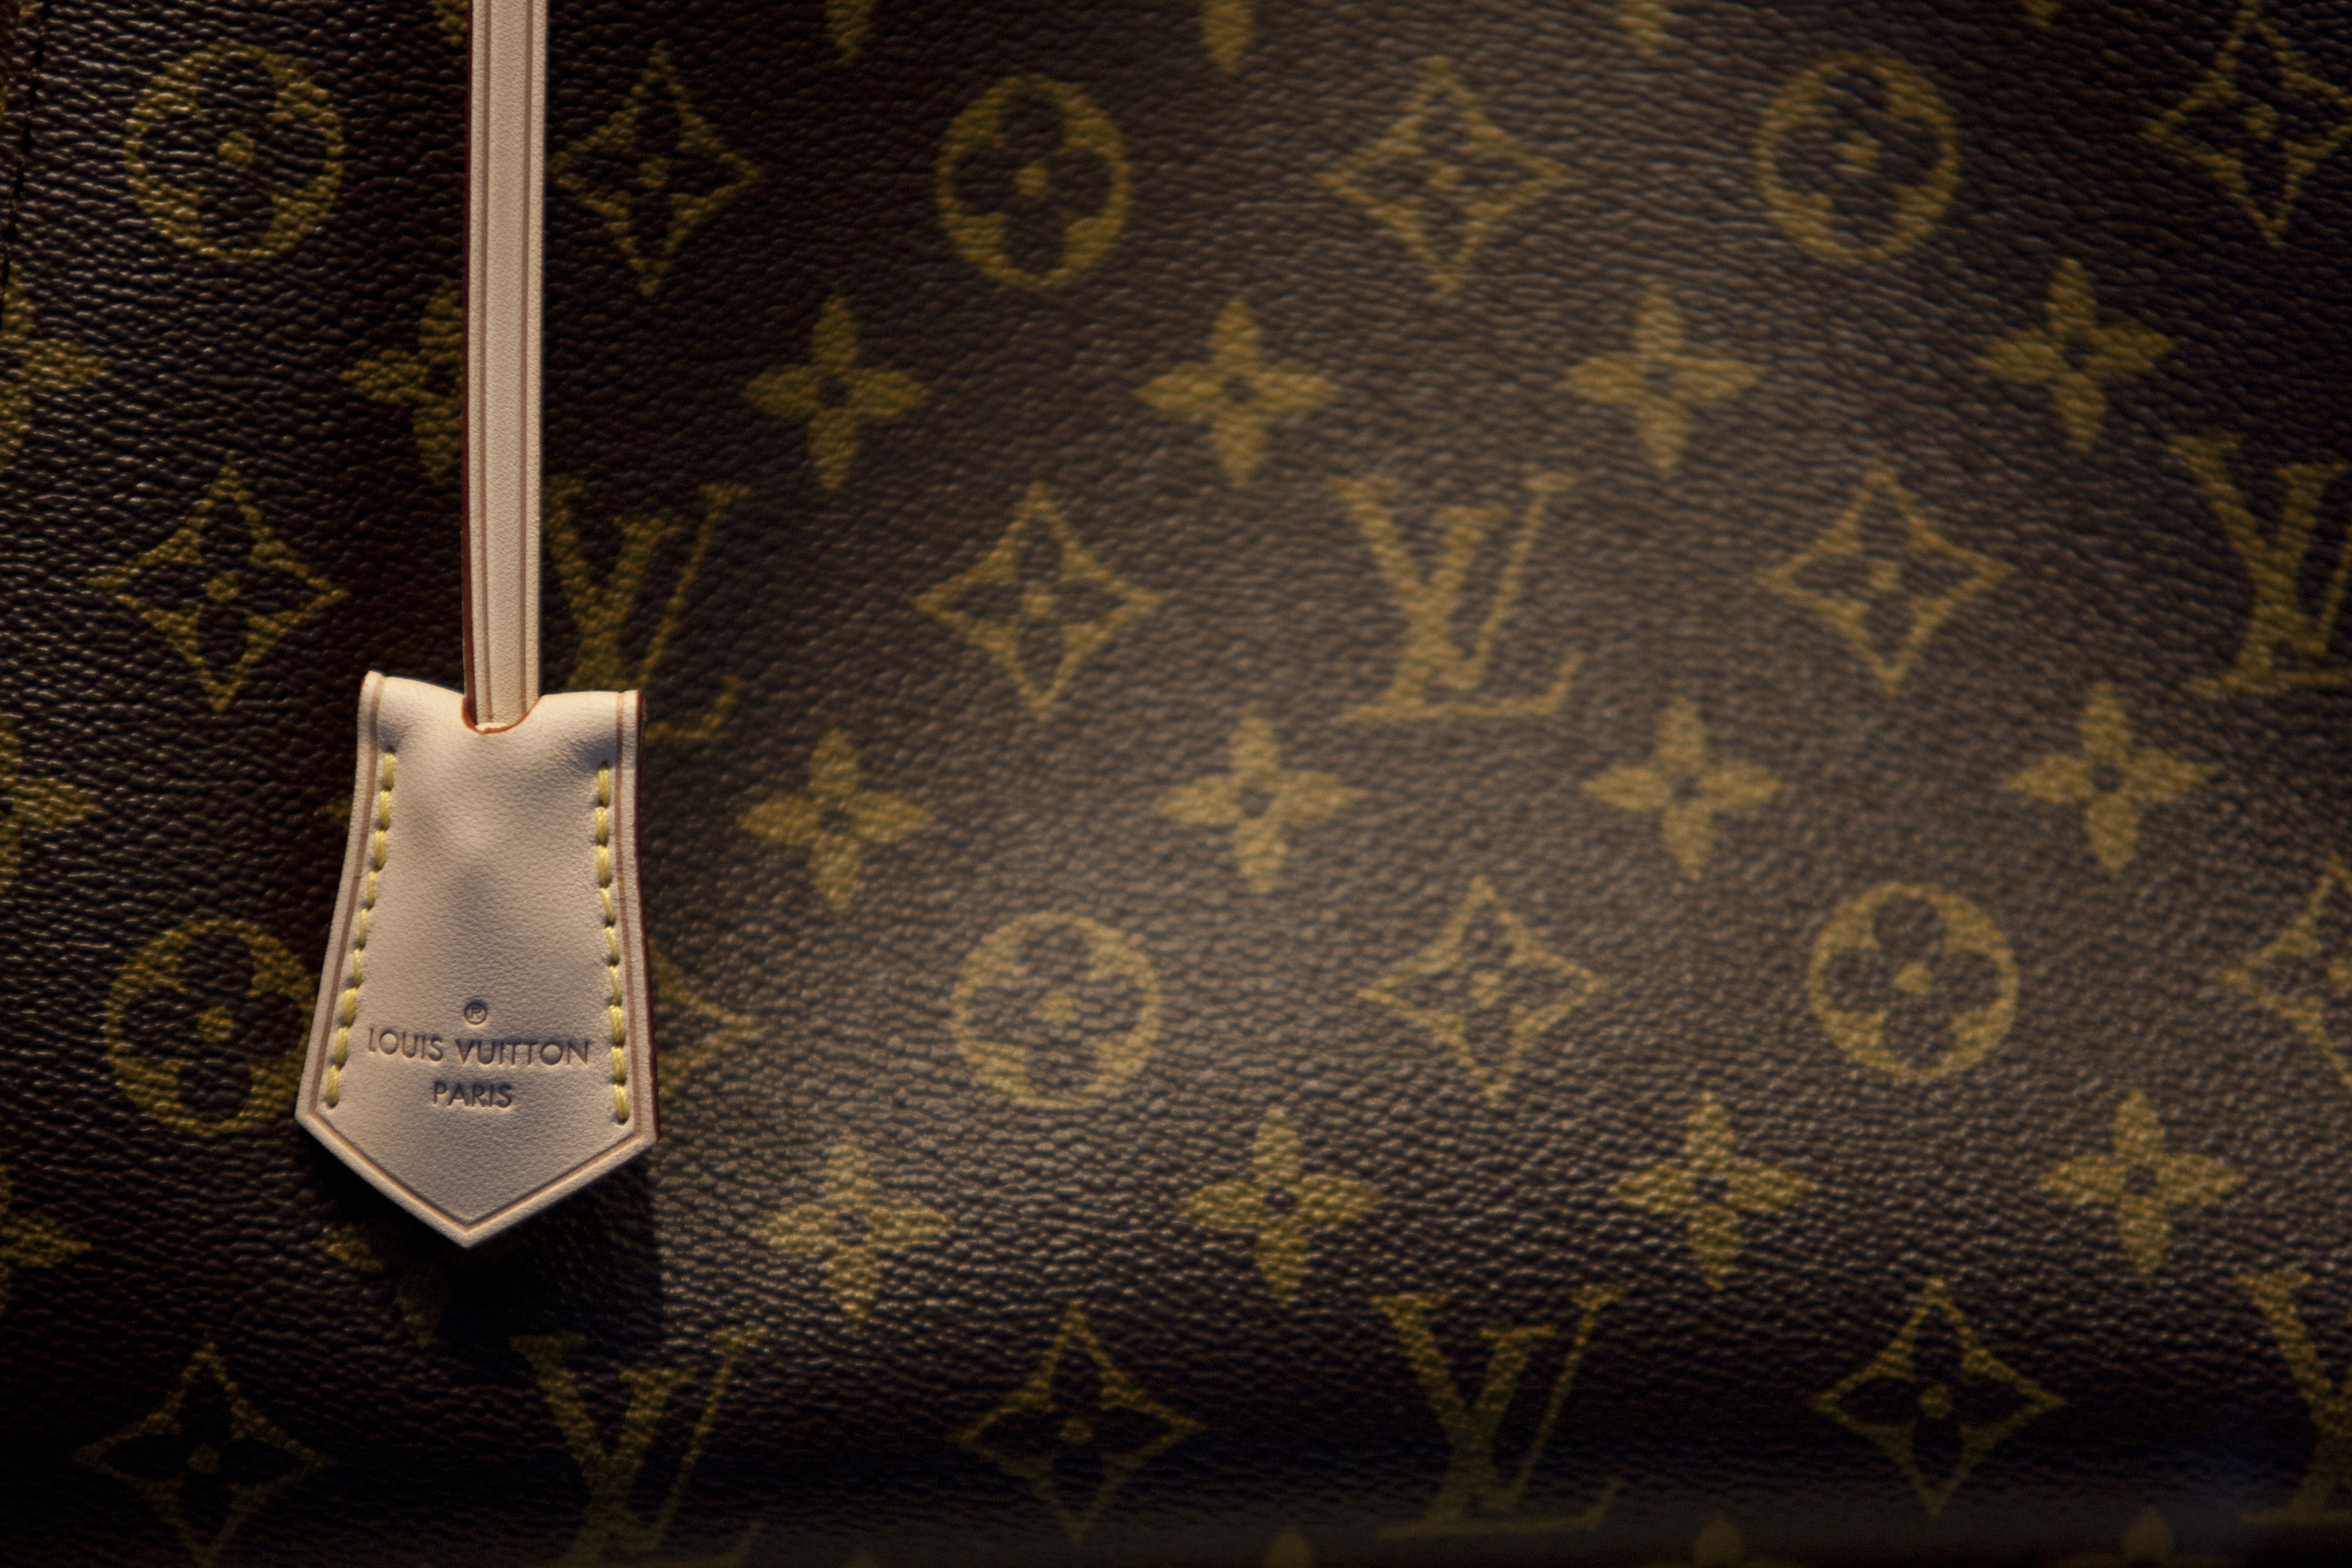 questionnaire luxury brands and louis vuitton The high prices also reflect a growing consideration of luxury handbags as smart   if you look at brands whose bags are hard to procure on the primary market,  ' at louis vuitton, there is a clear delineation between the classic collection and.